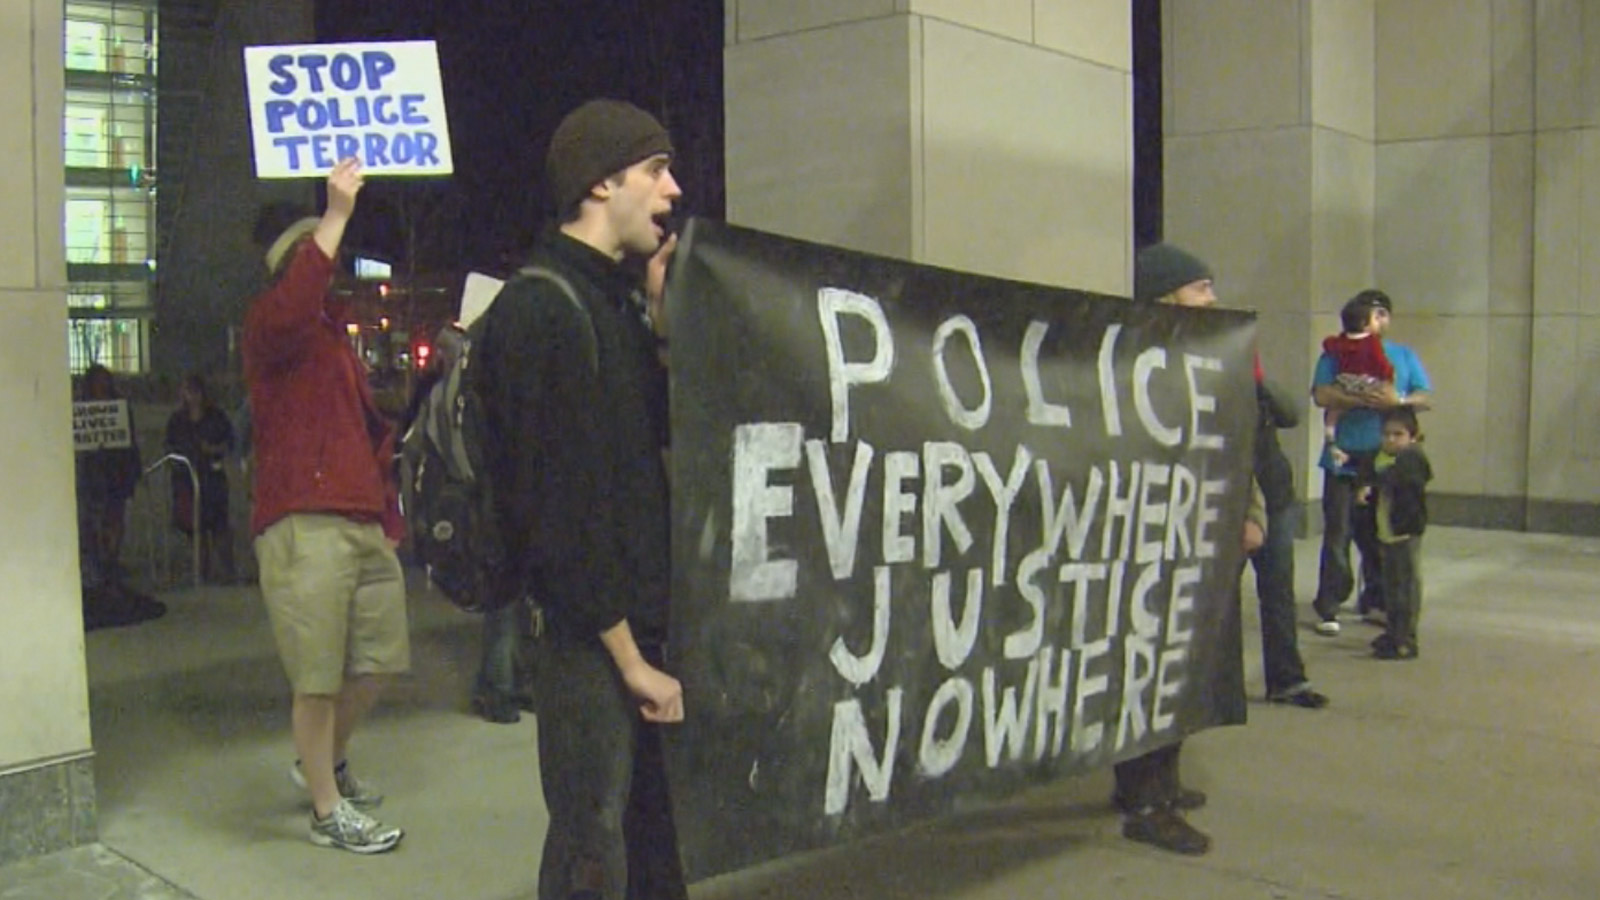 Protesters rallied outside the Denver jail on Wednesday (credit: CBS)